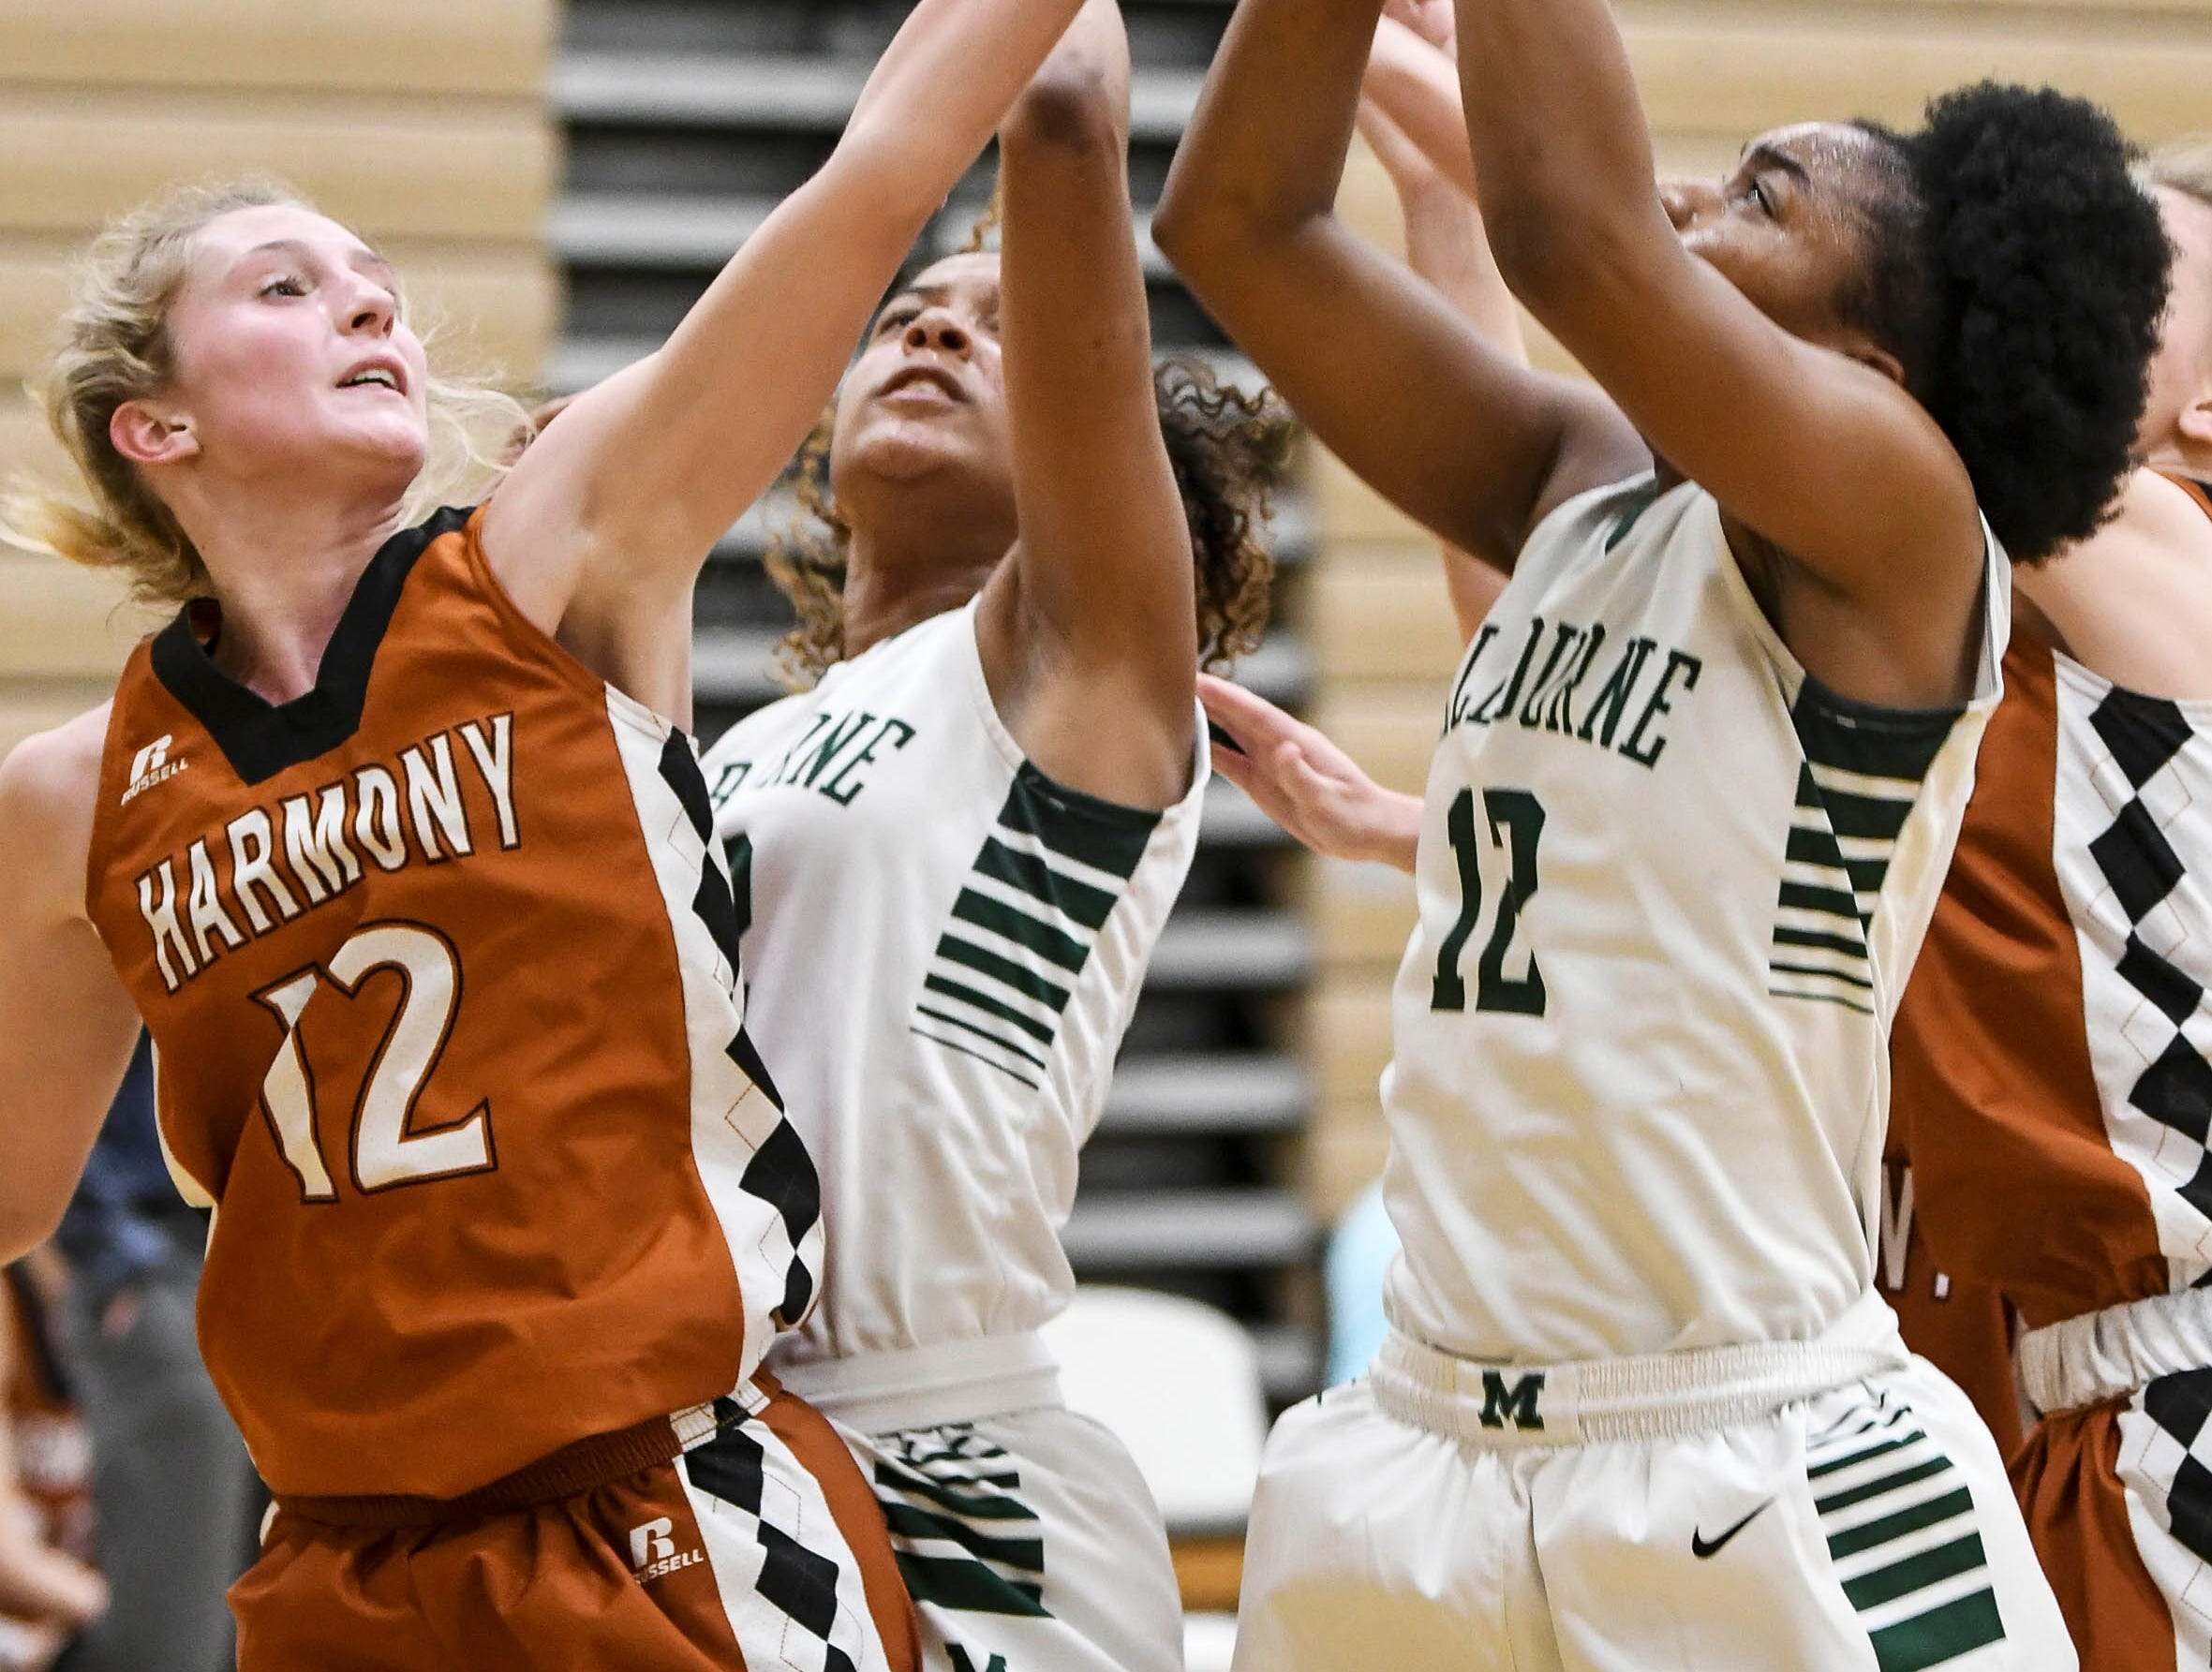 Allison Richardson of Harmony battles Mikyla Tolivert of Melbourne for a rebound Tuesday during their game at Melbourne High.